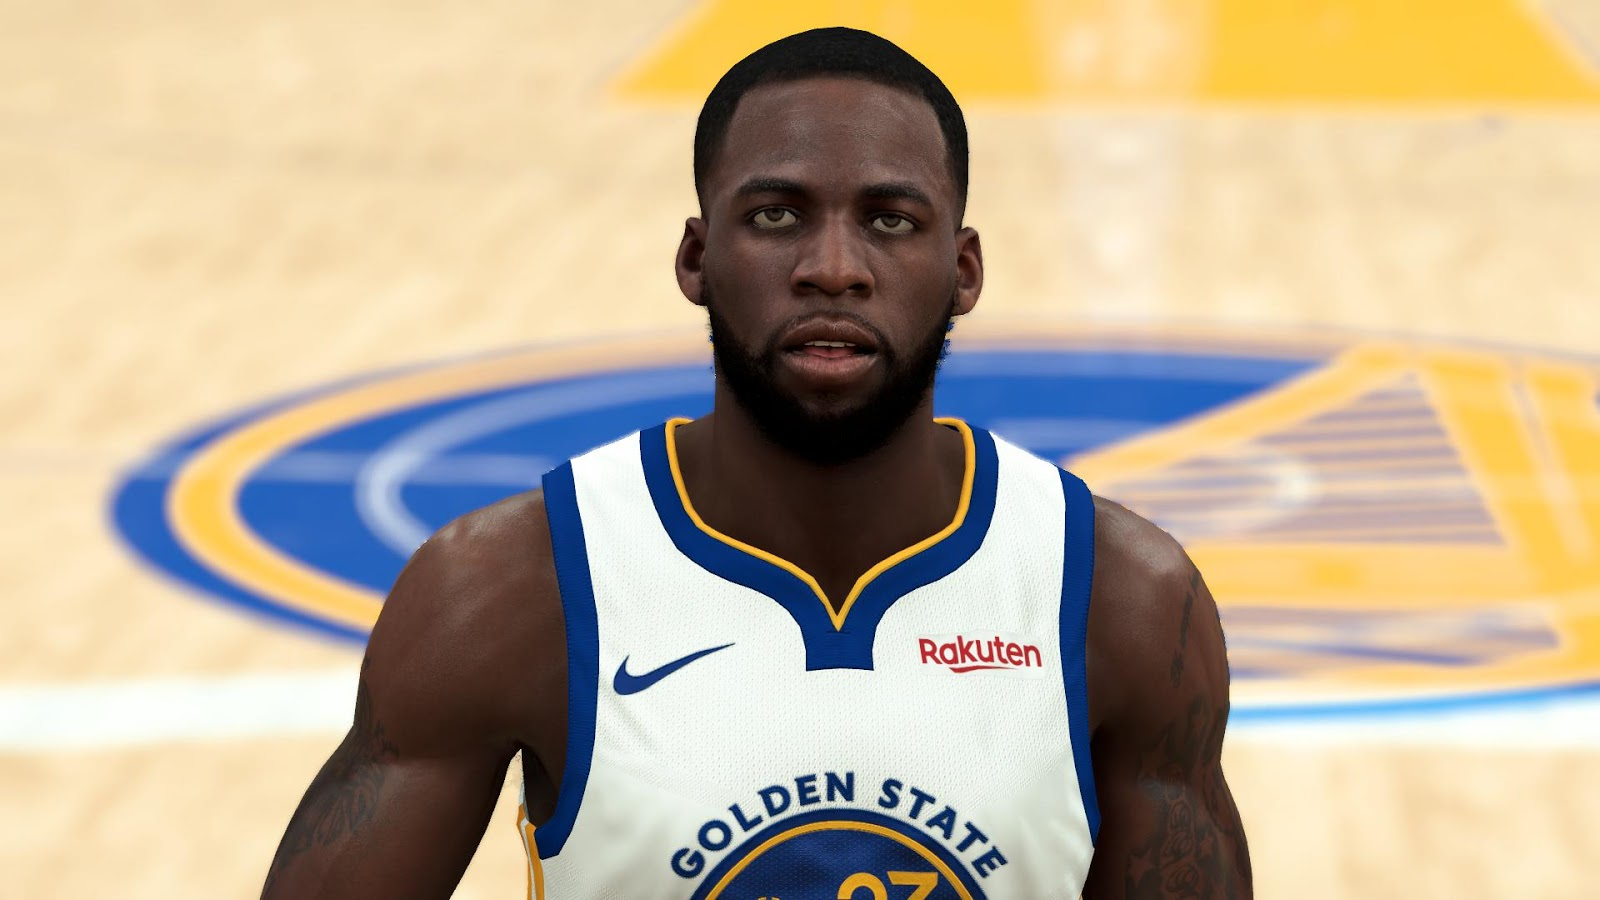 Draymond Green Hd Face And Body Model By Awei For 2k20 Nba 2k Updates Roster Update Cyberface Etc